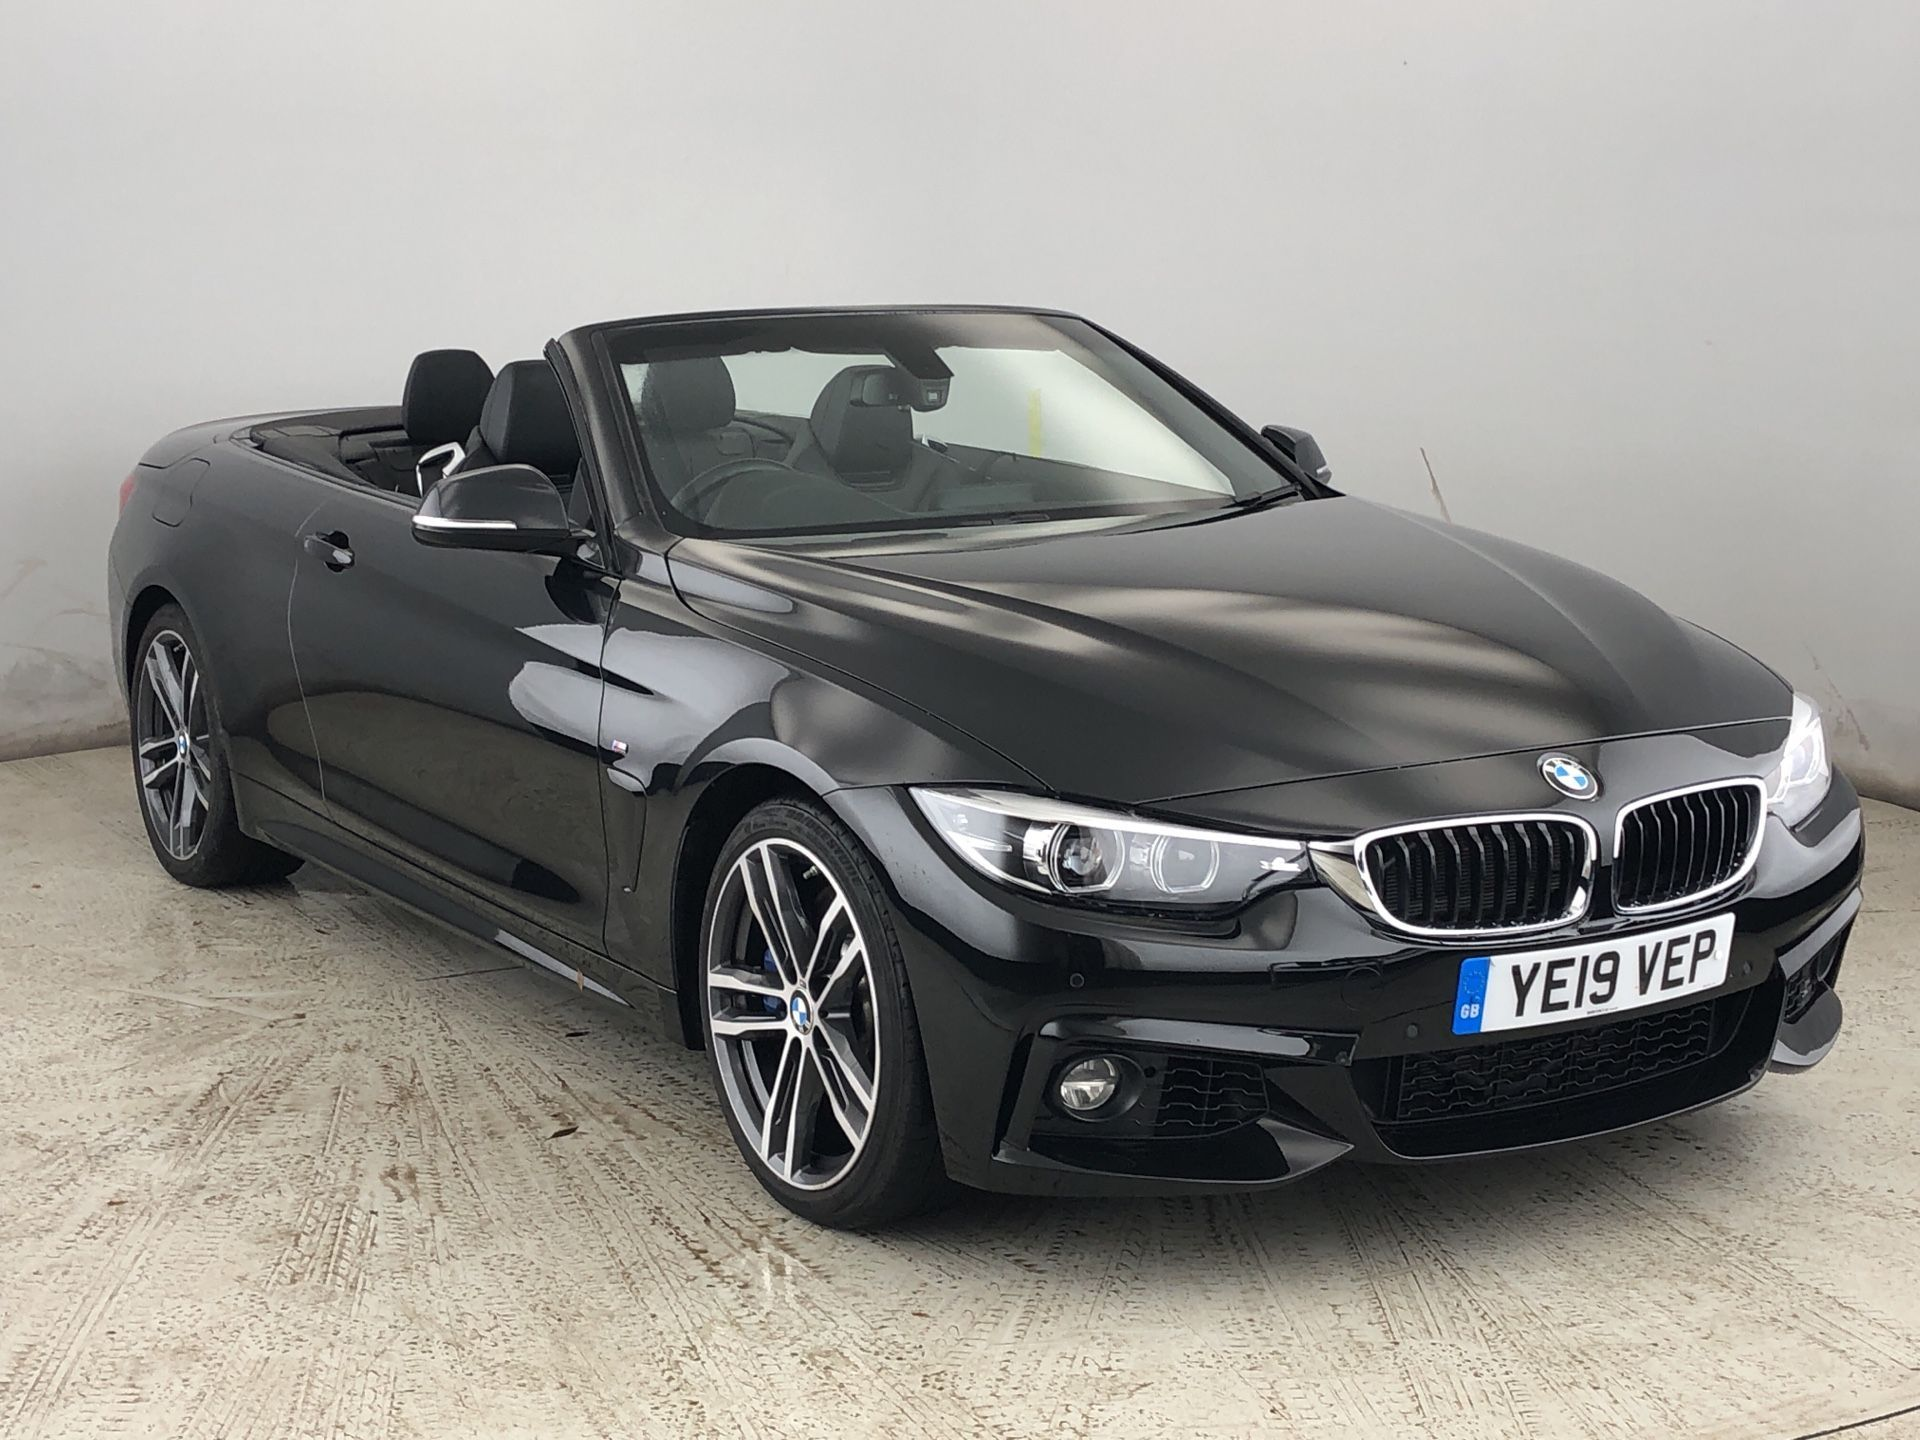 Image 1 - BMW 440i M Sport Convertible (YE19VEP)